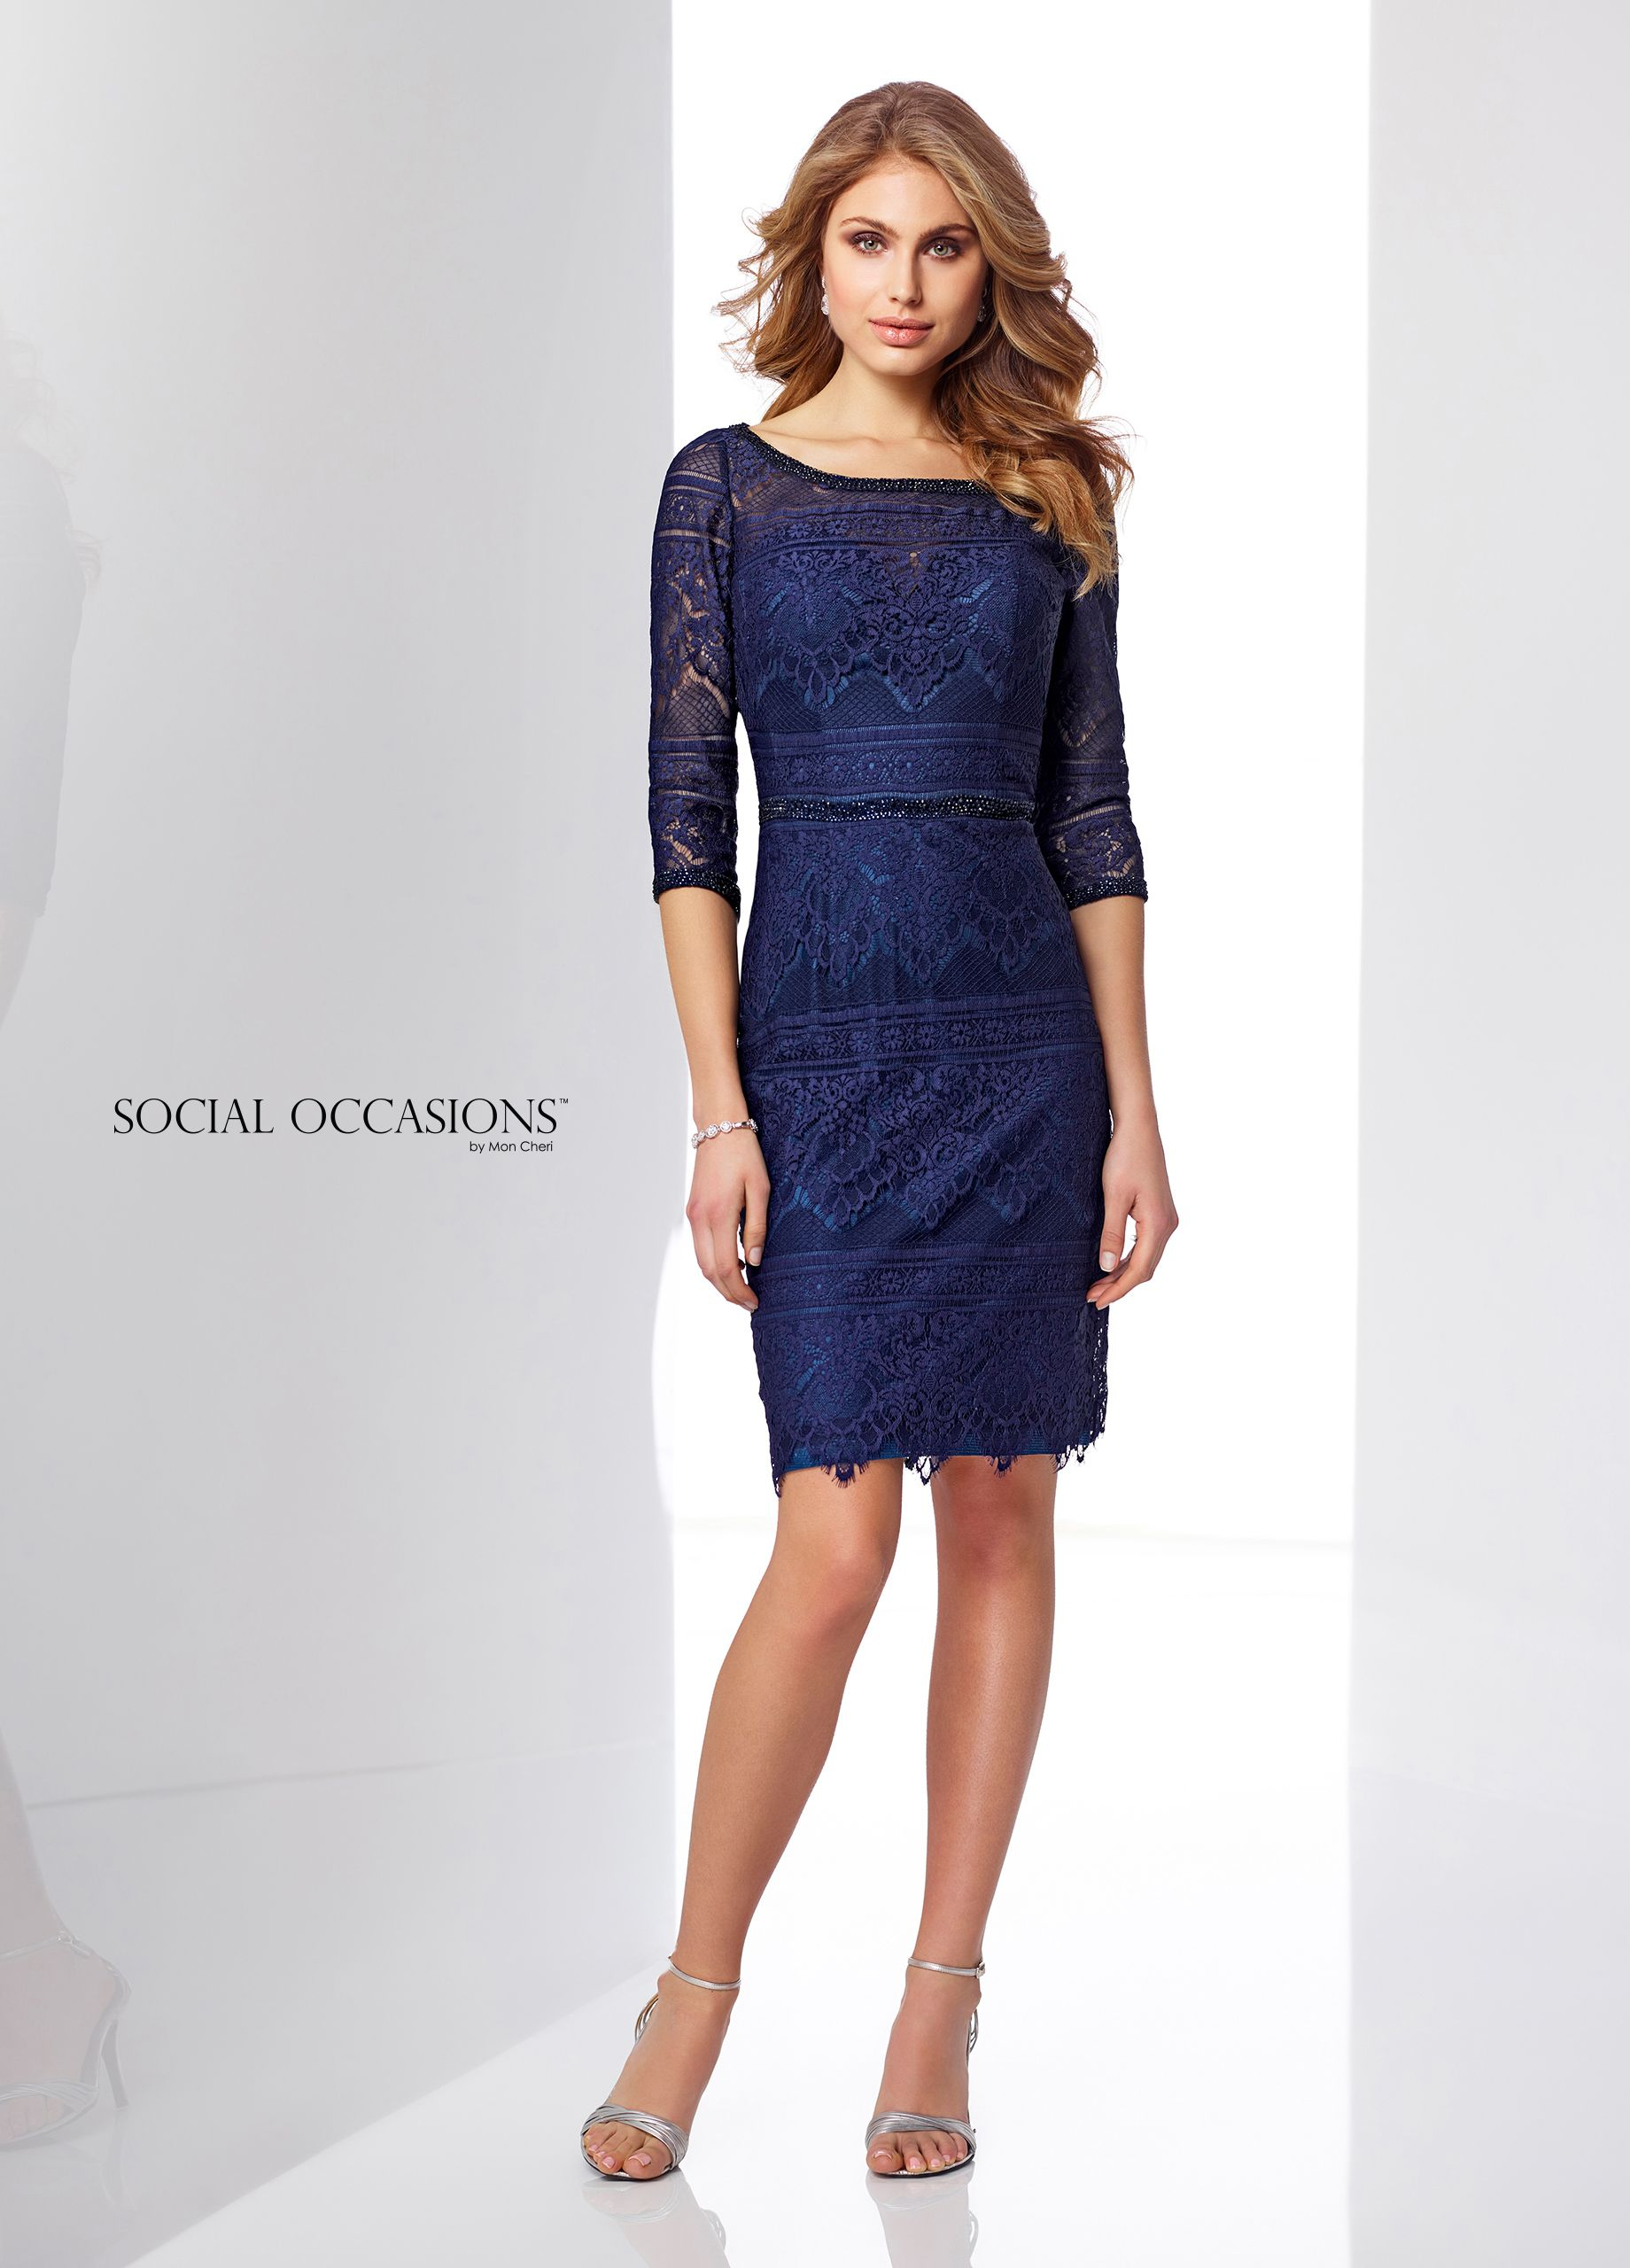 Lace over jersey kneelength sheath special occasions